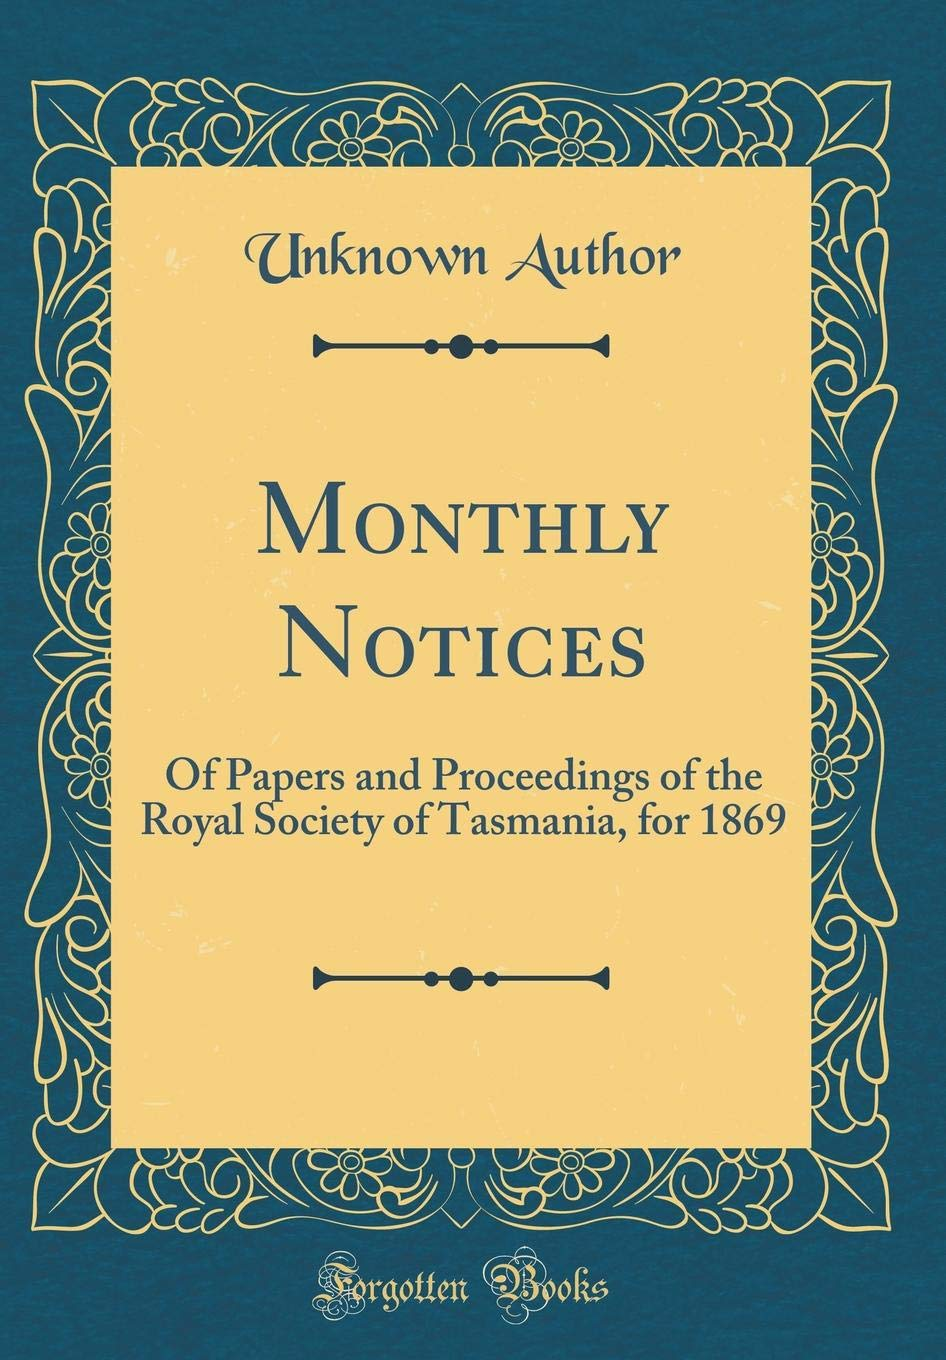 Monthly Notices: Of Papers and Proceedings of the Royal Society of Tasmania, for 1869 (Classic Reprint) PDF